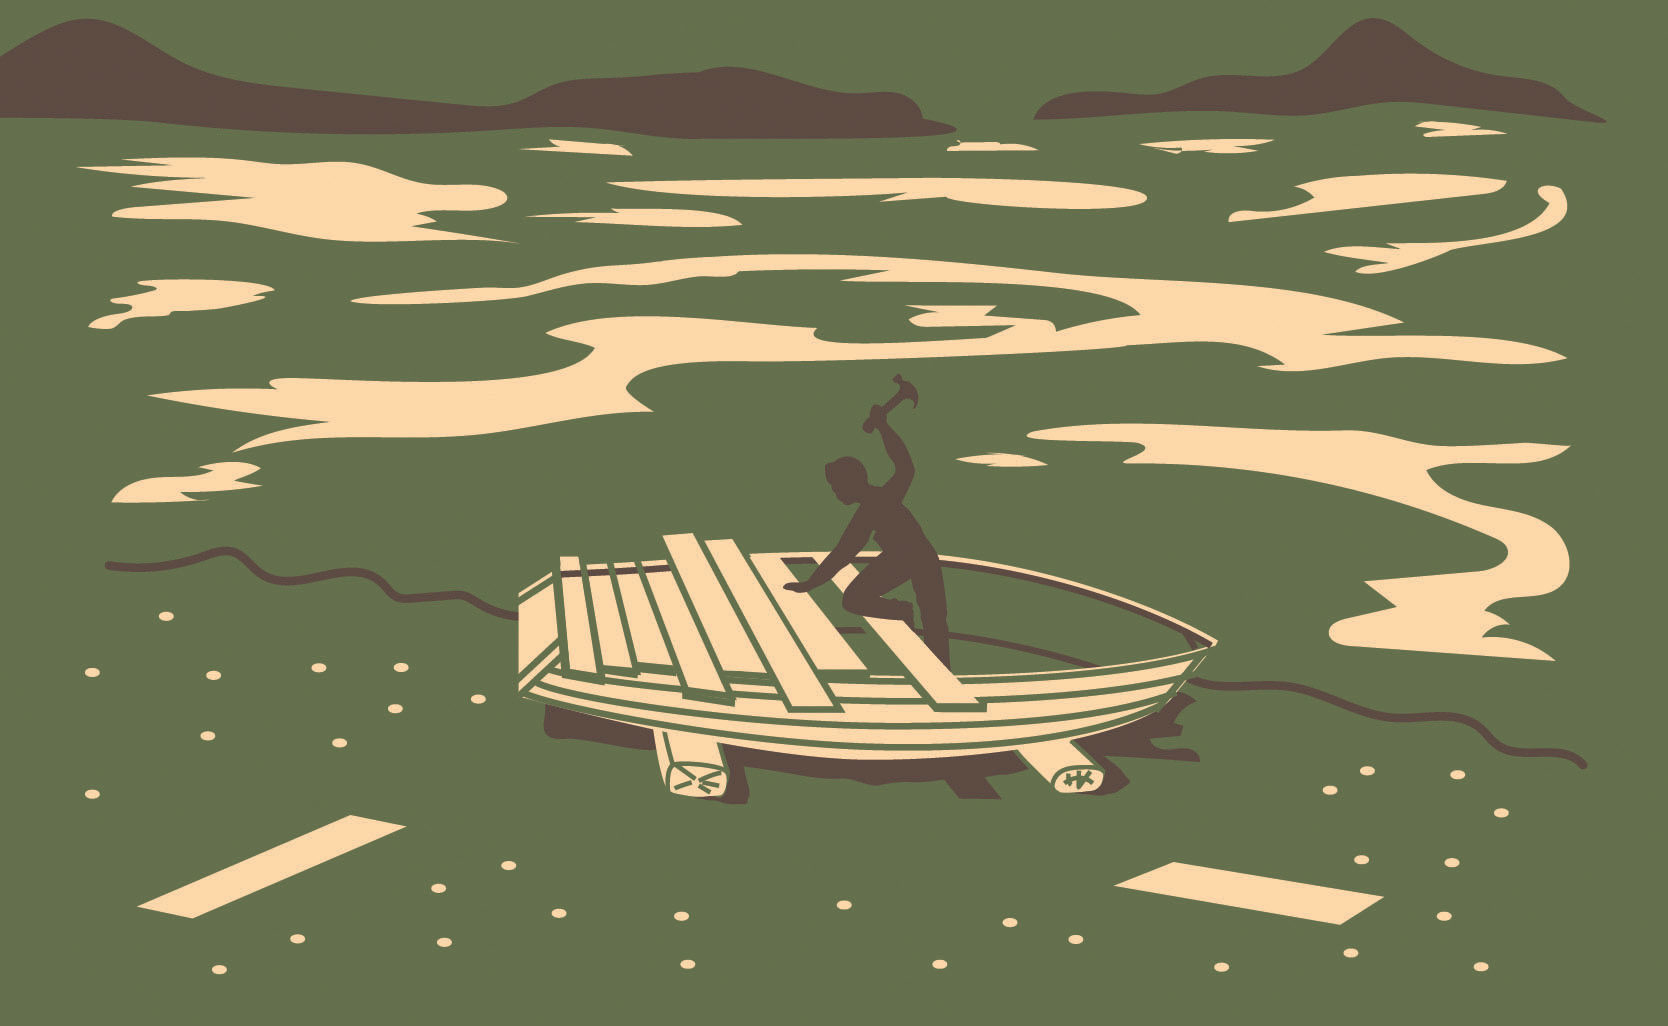 """From the cover of """"The Boatbuilder"""" by Daniel Gumbiner"""